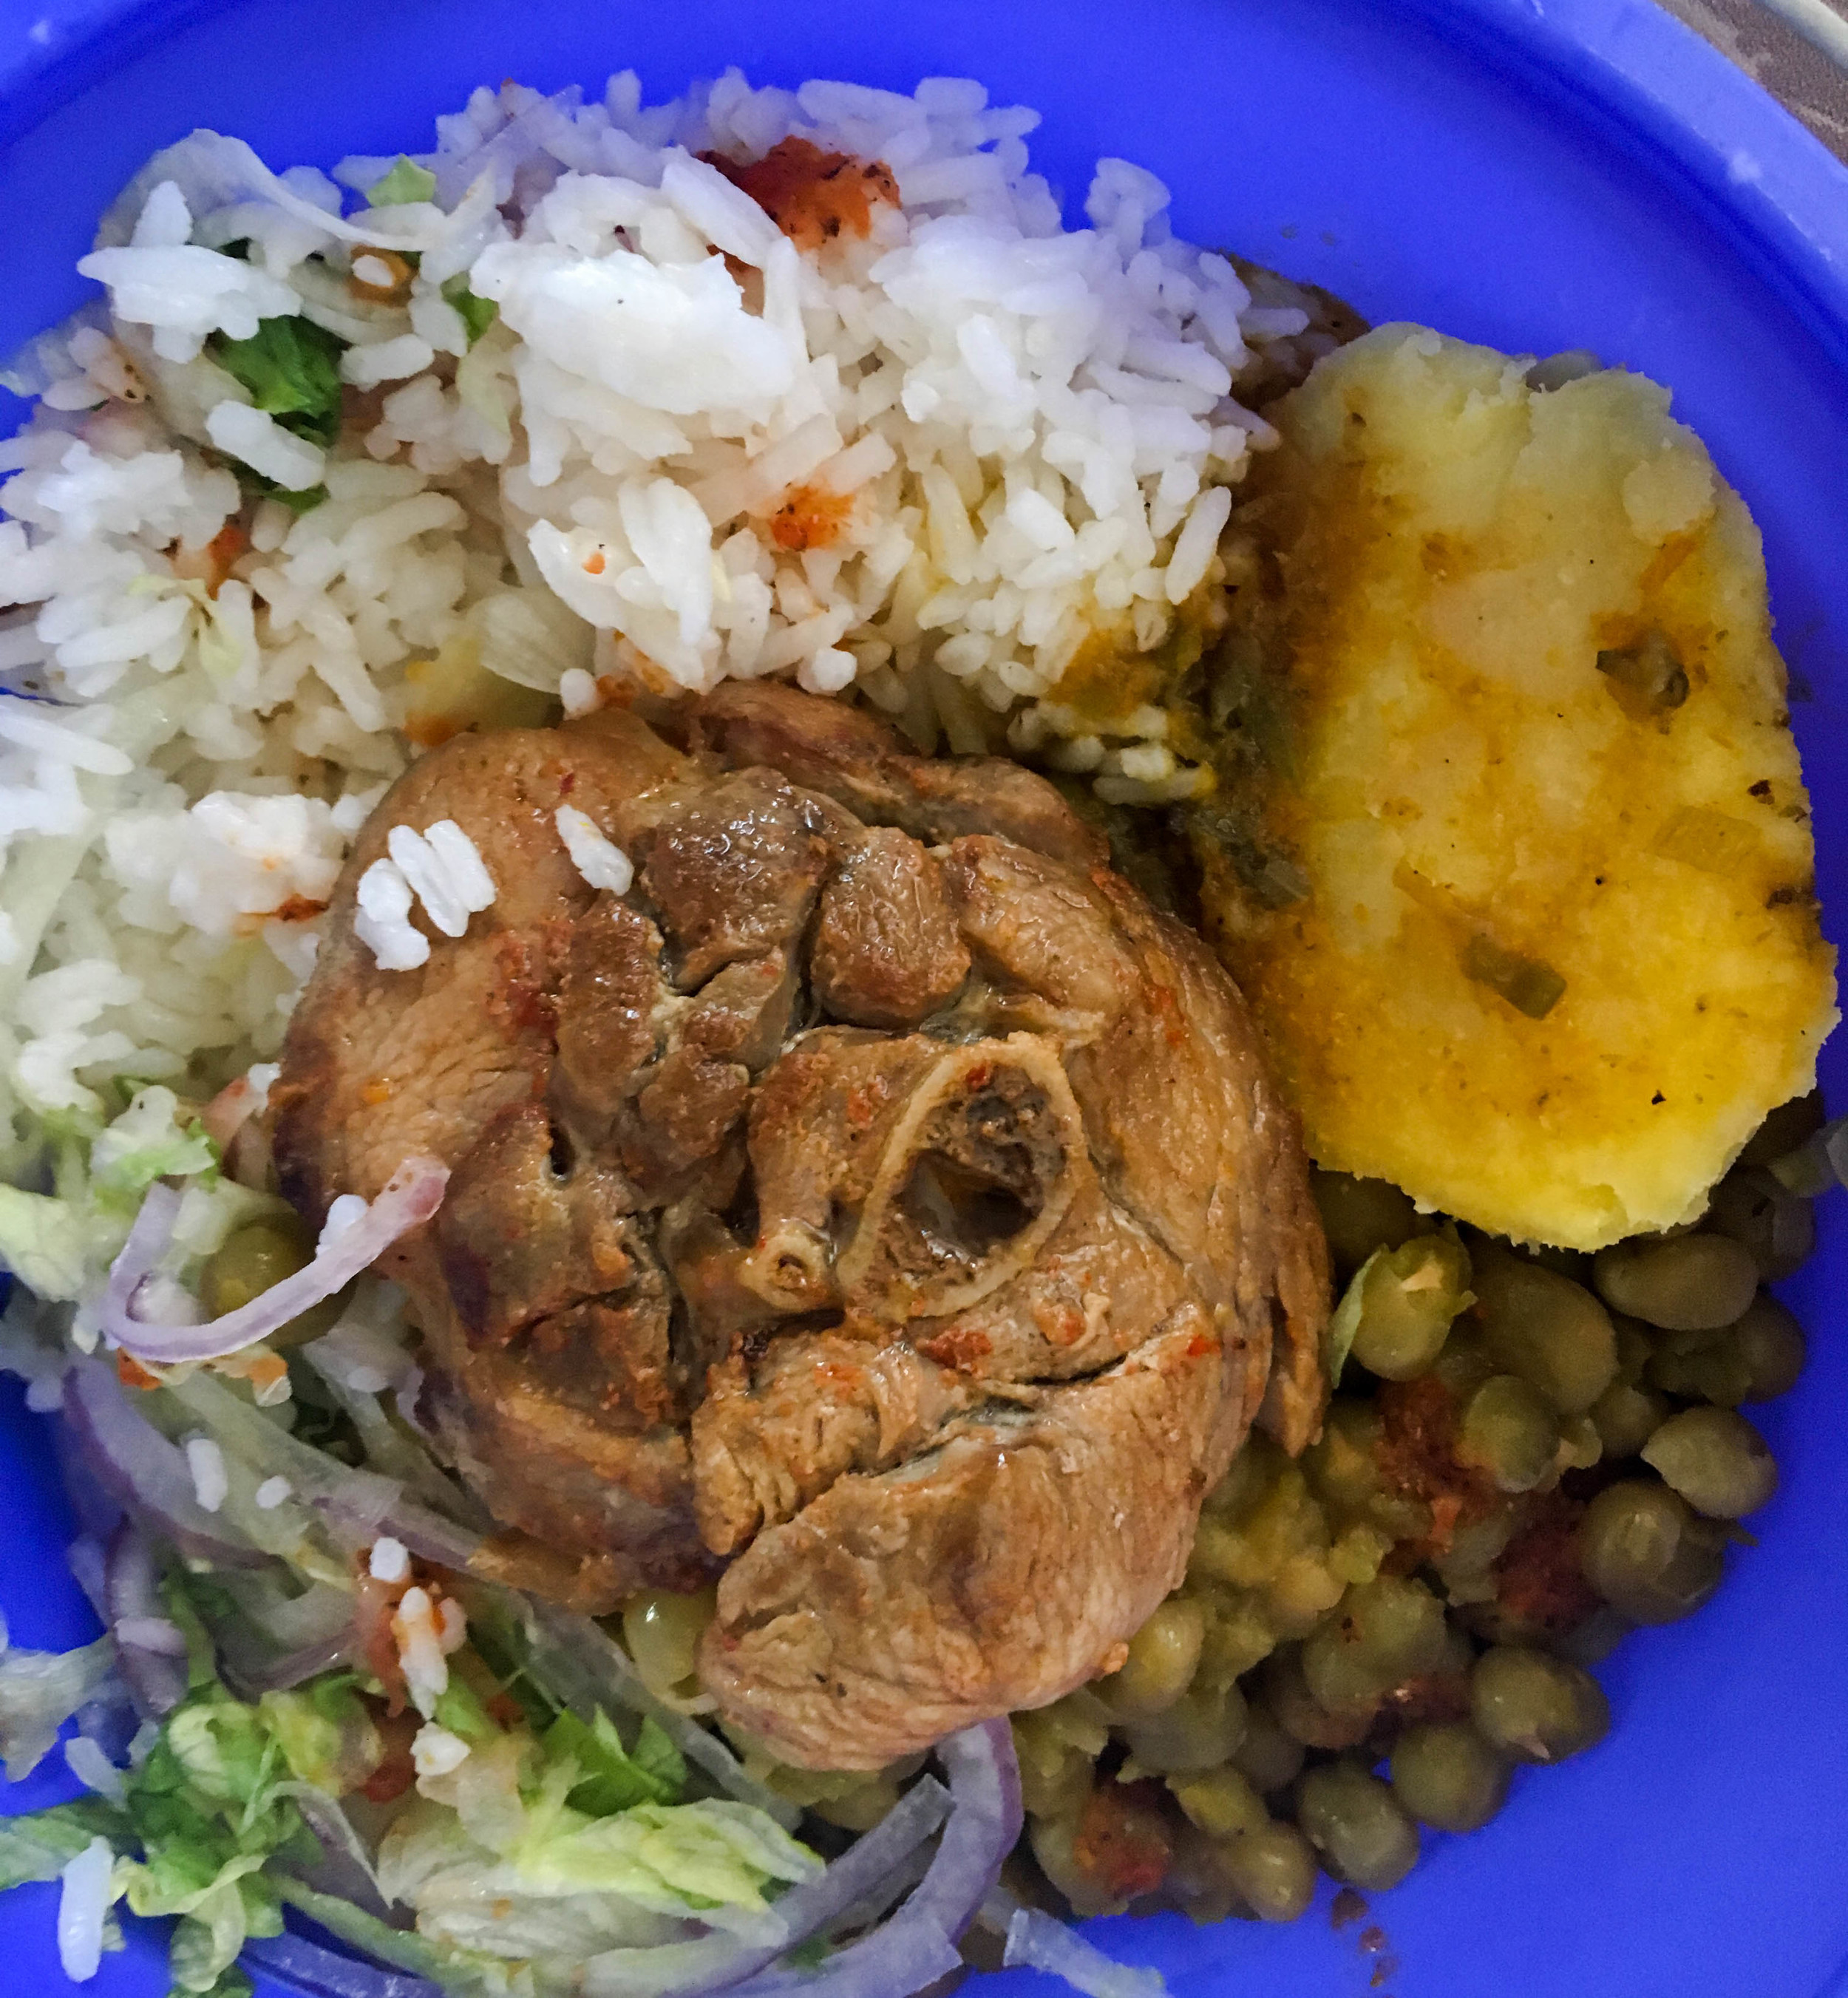 Sometimes I bring tuberware and take my food to go. On this day I ate pavita frita (fried turkey) with peas, potatoes, and rice.